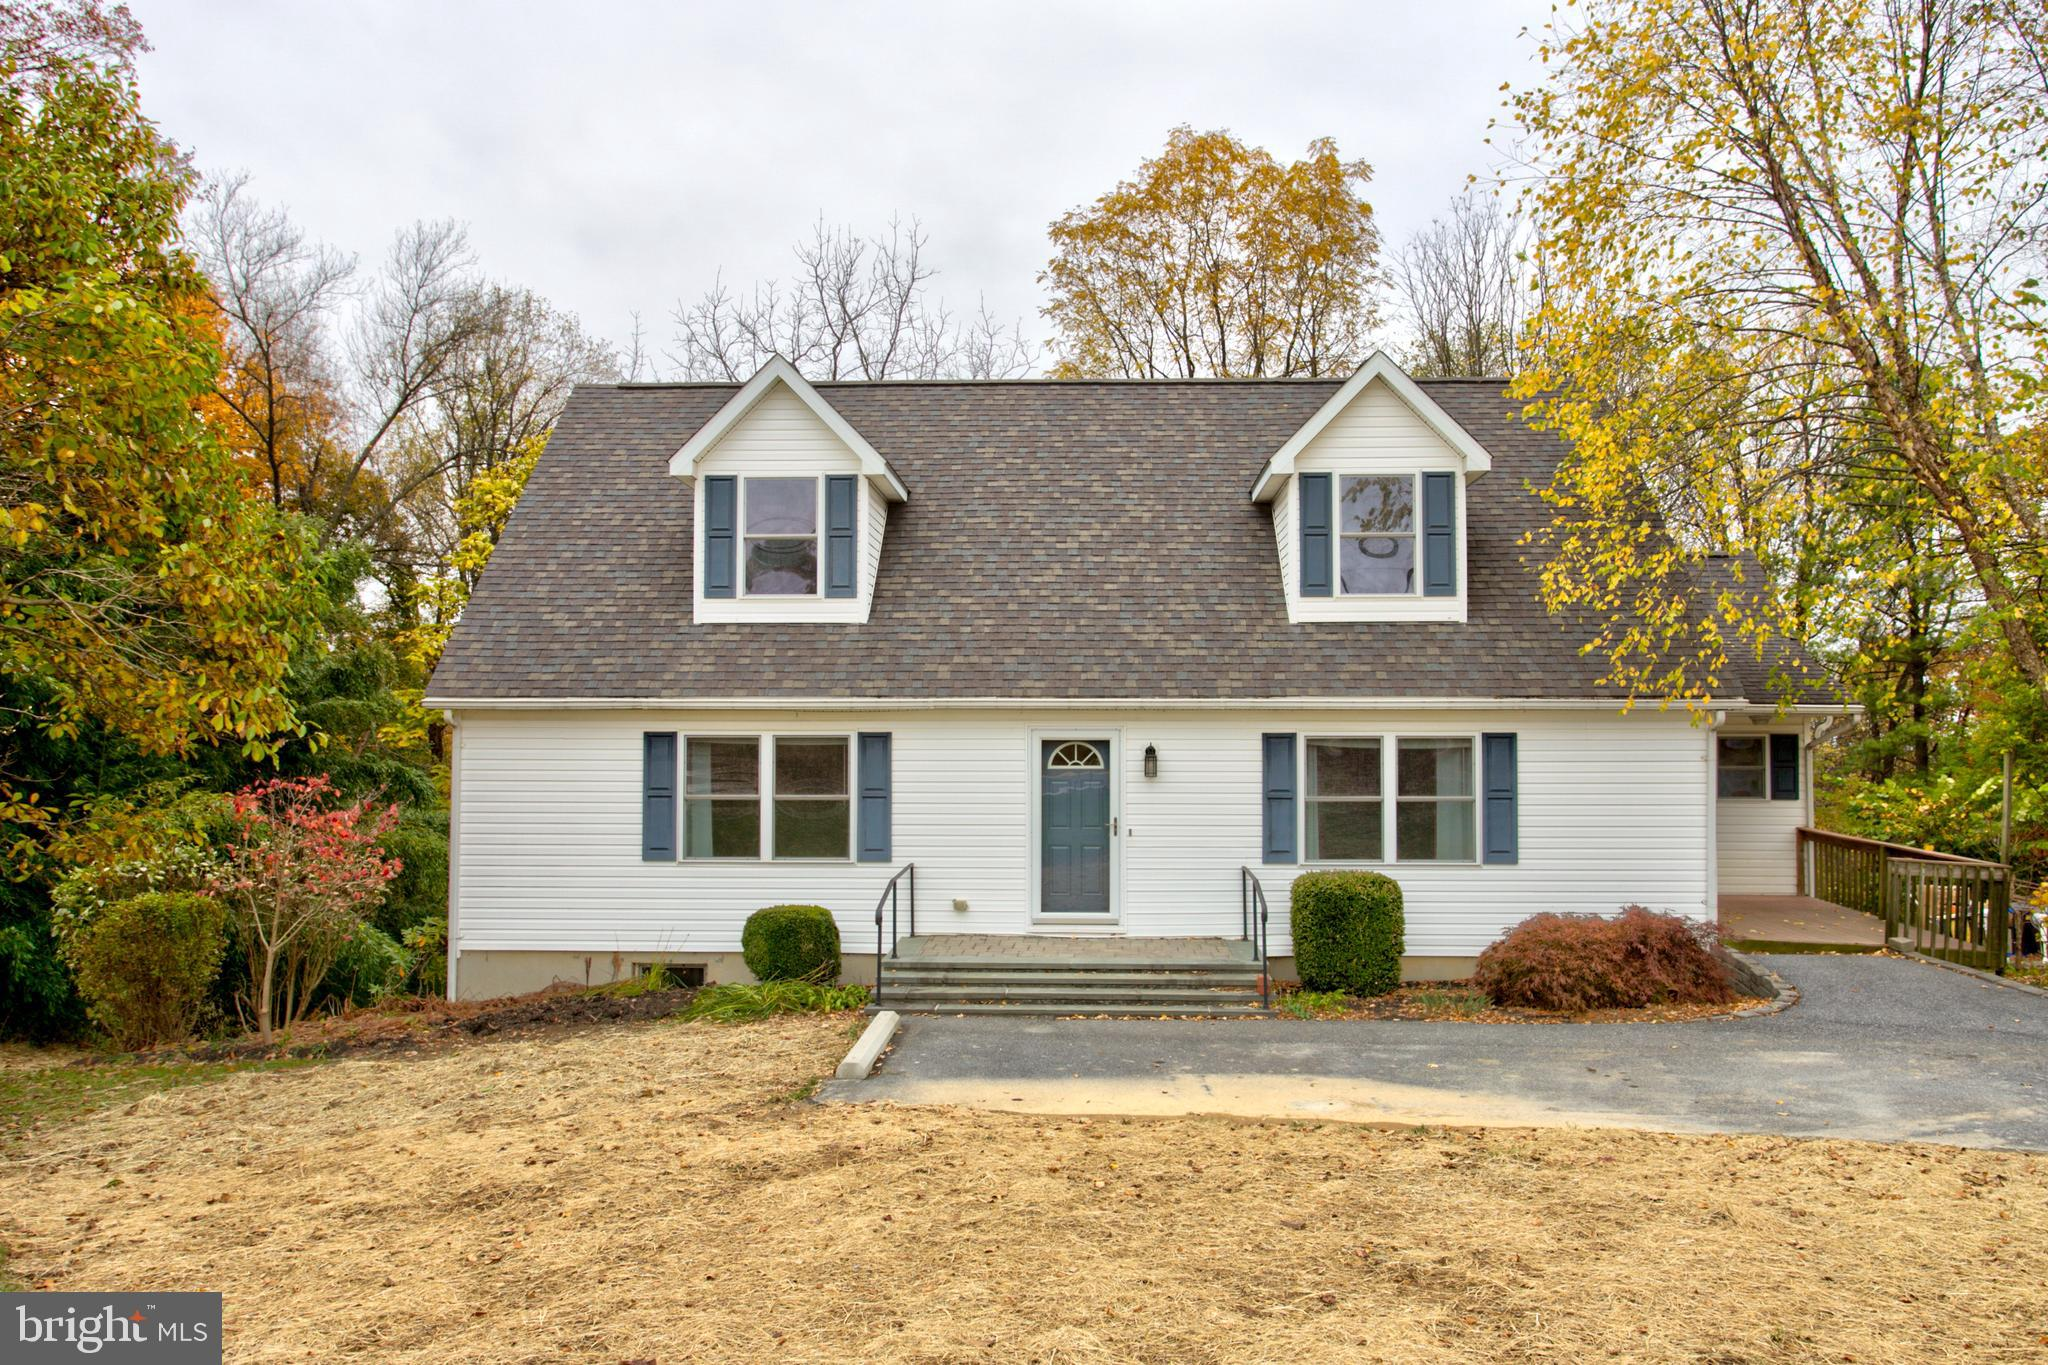 531 MARTIC HEIGHTS DRIVE, HOLTWOOD, PA 17532